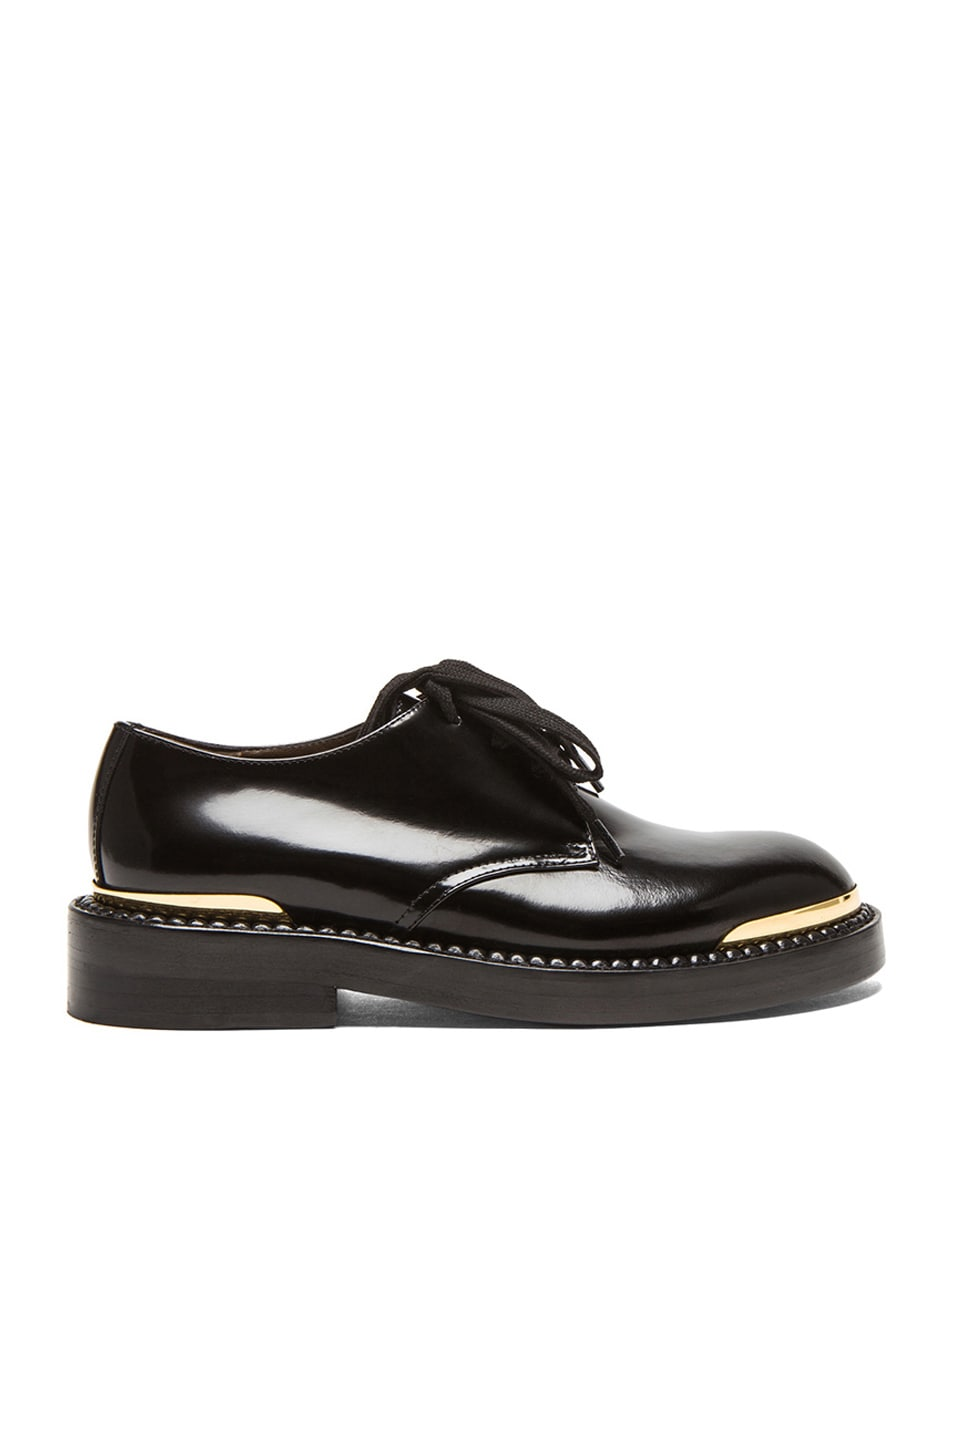 Image 1 of Marni Lace Up Leather Oxfords in Coal